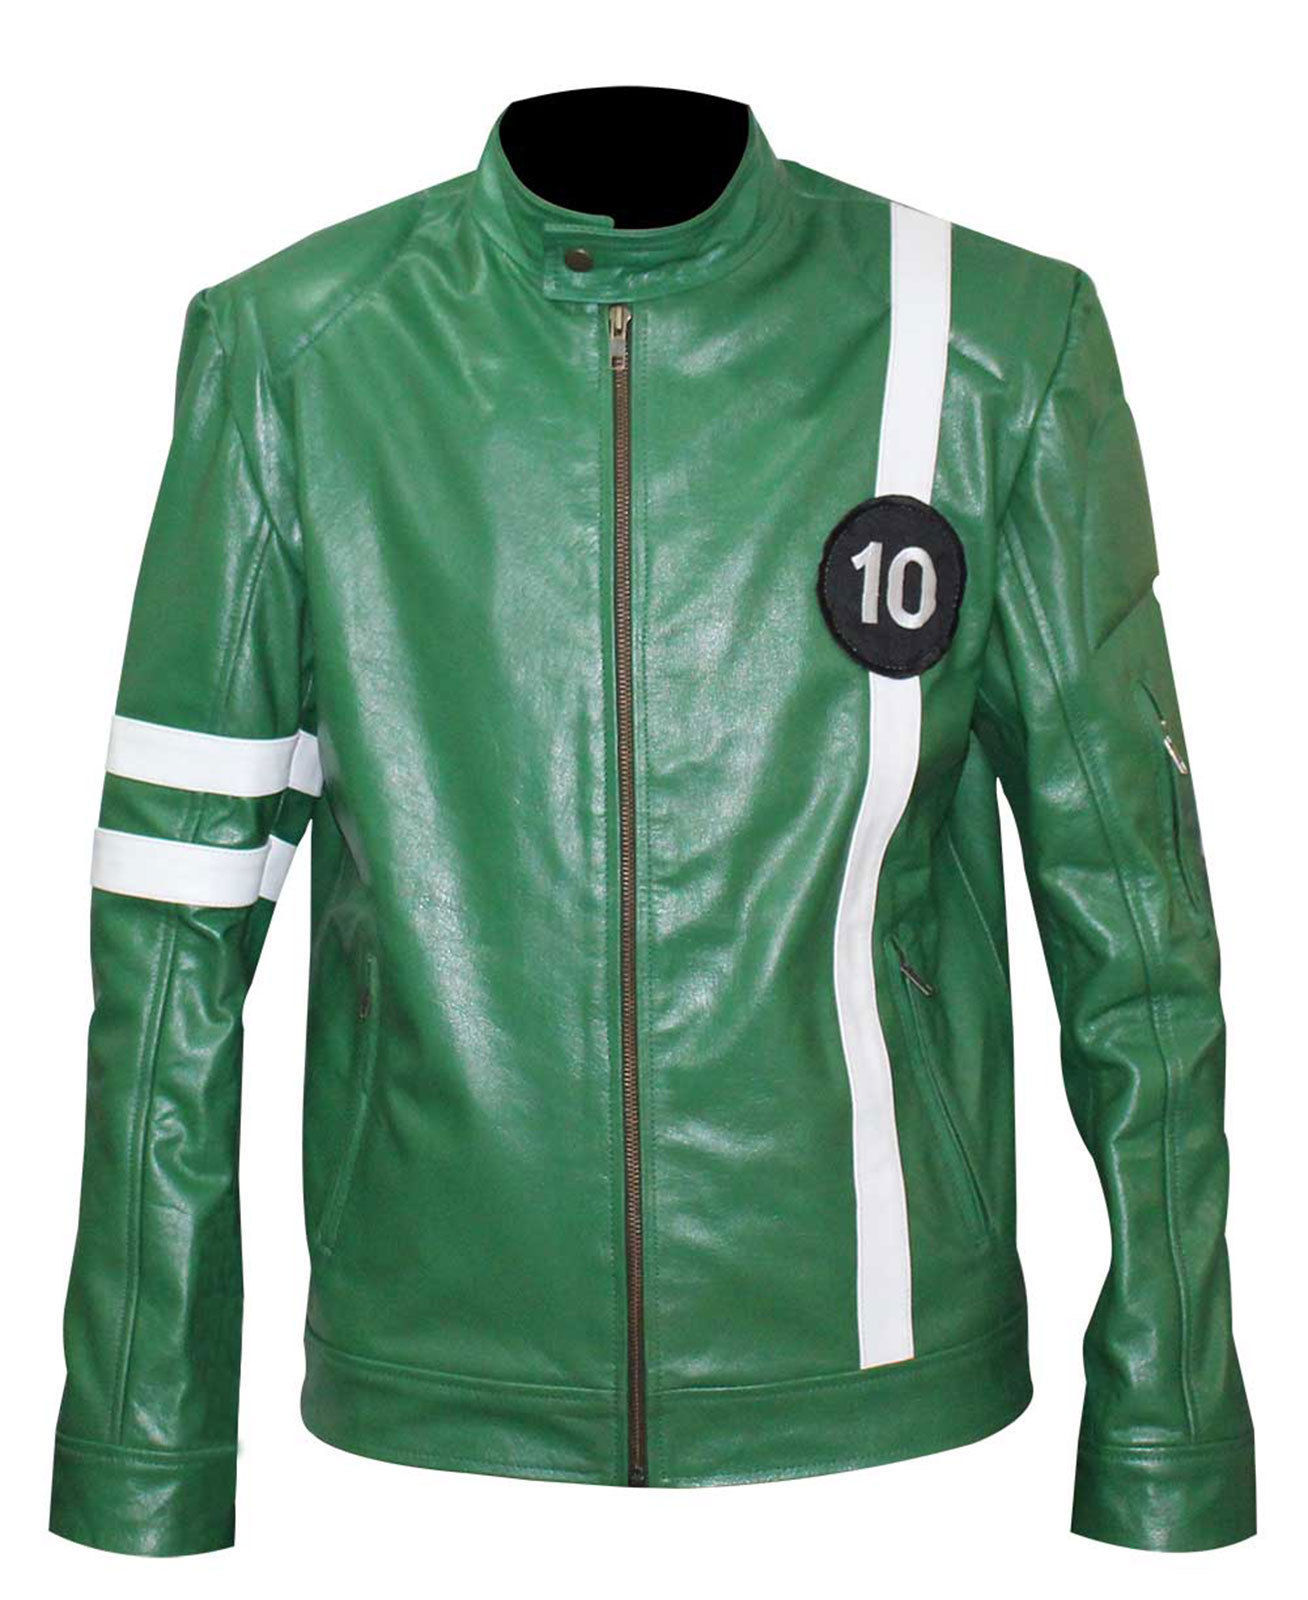 Primary image for Ben 10 Tennyson Alien Swarm Ryan Kelley Green Leather Jacket